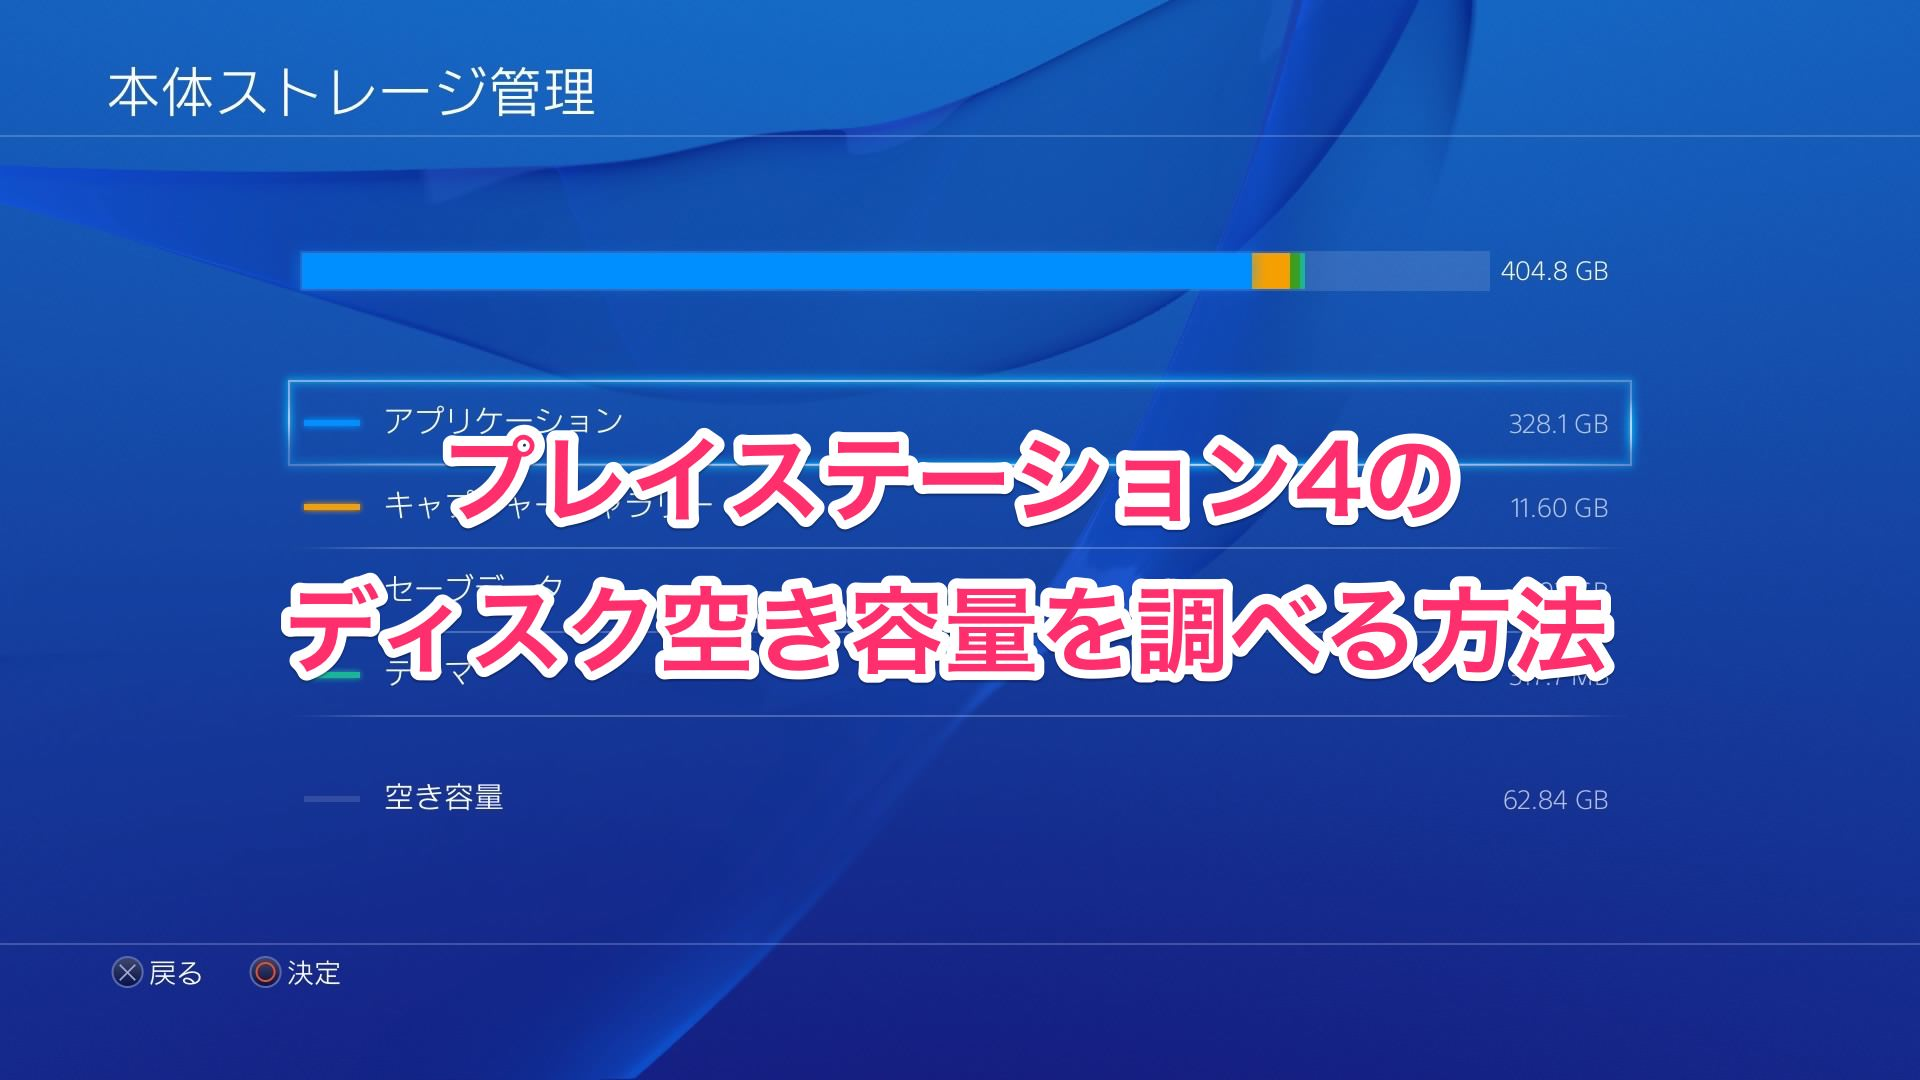 How to check capacity of playstation 4 1